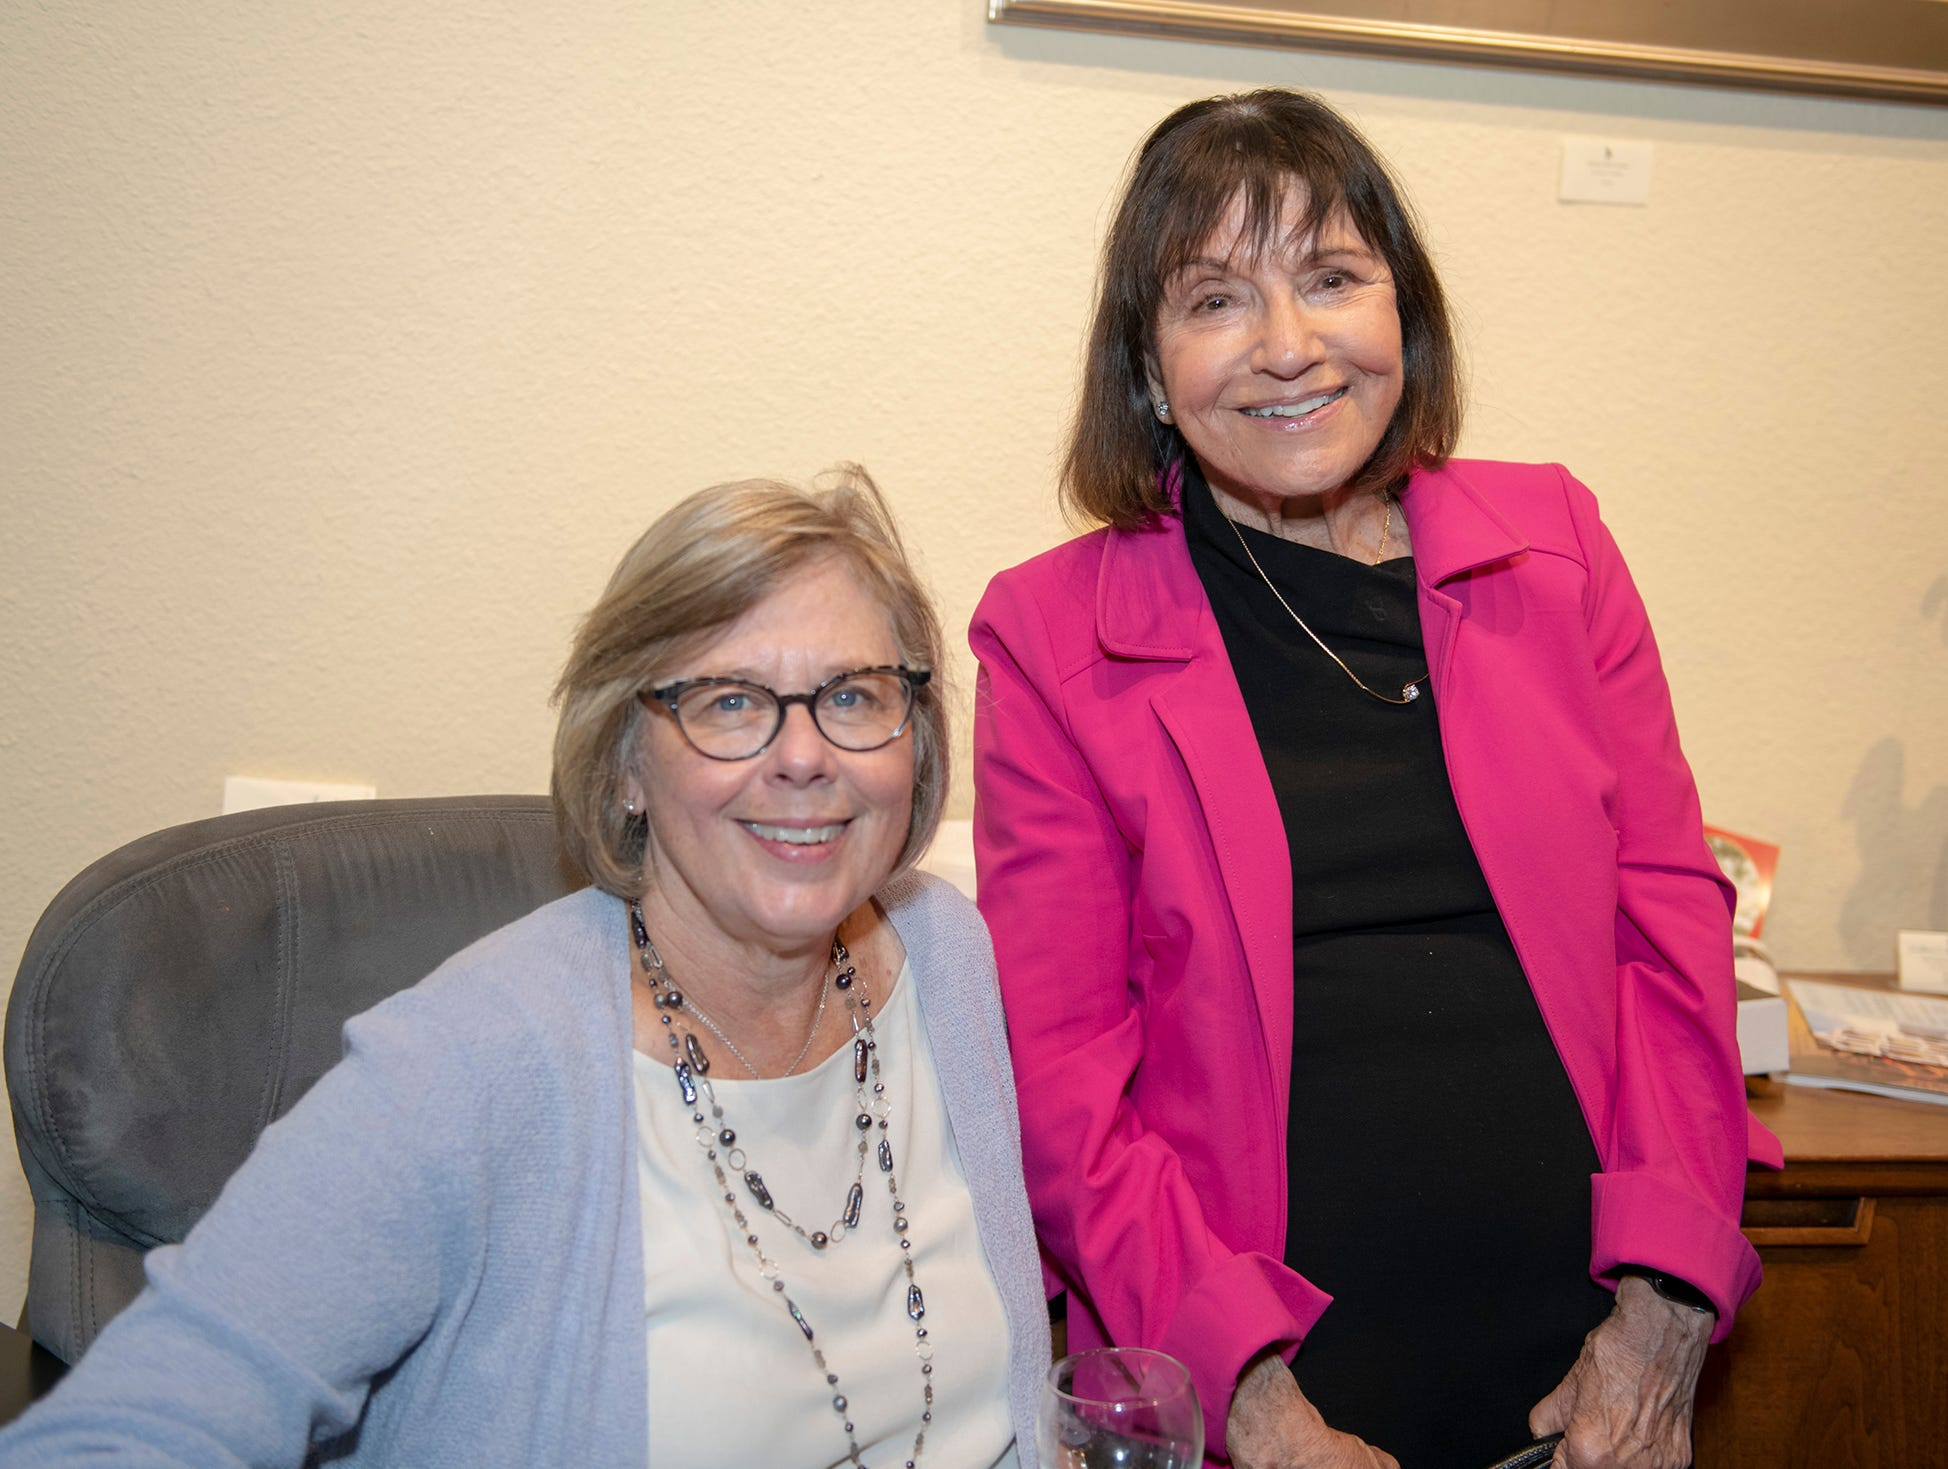 Barbara Pinaire, left, and Ina Tornberg at  Lyric Theatre's Dec. 18 show featuring world class violinist Itzhak Perlman.